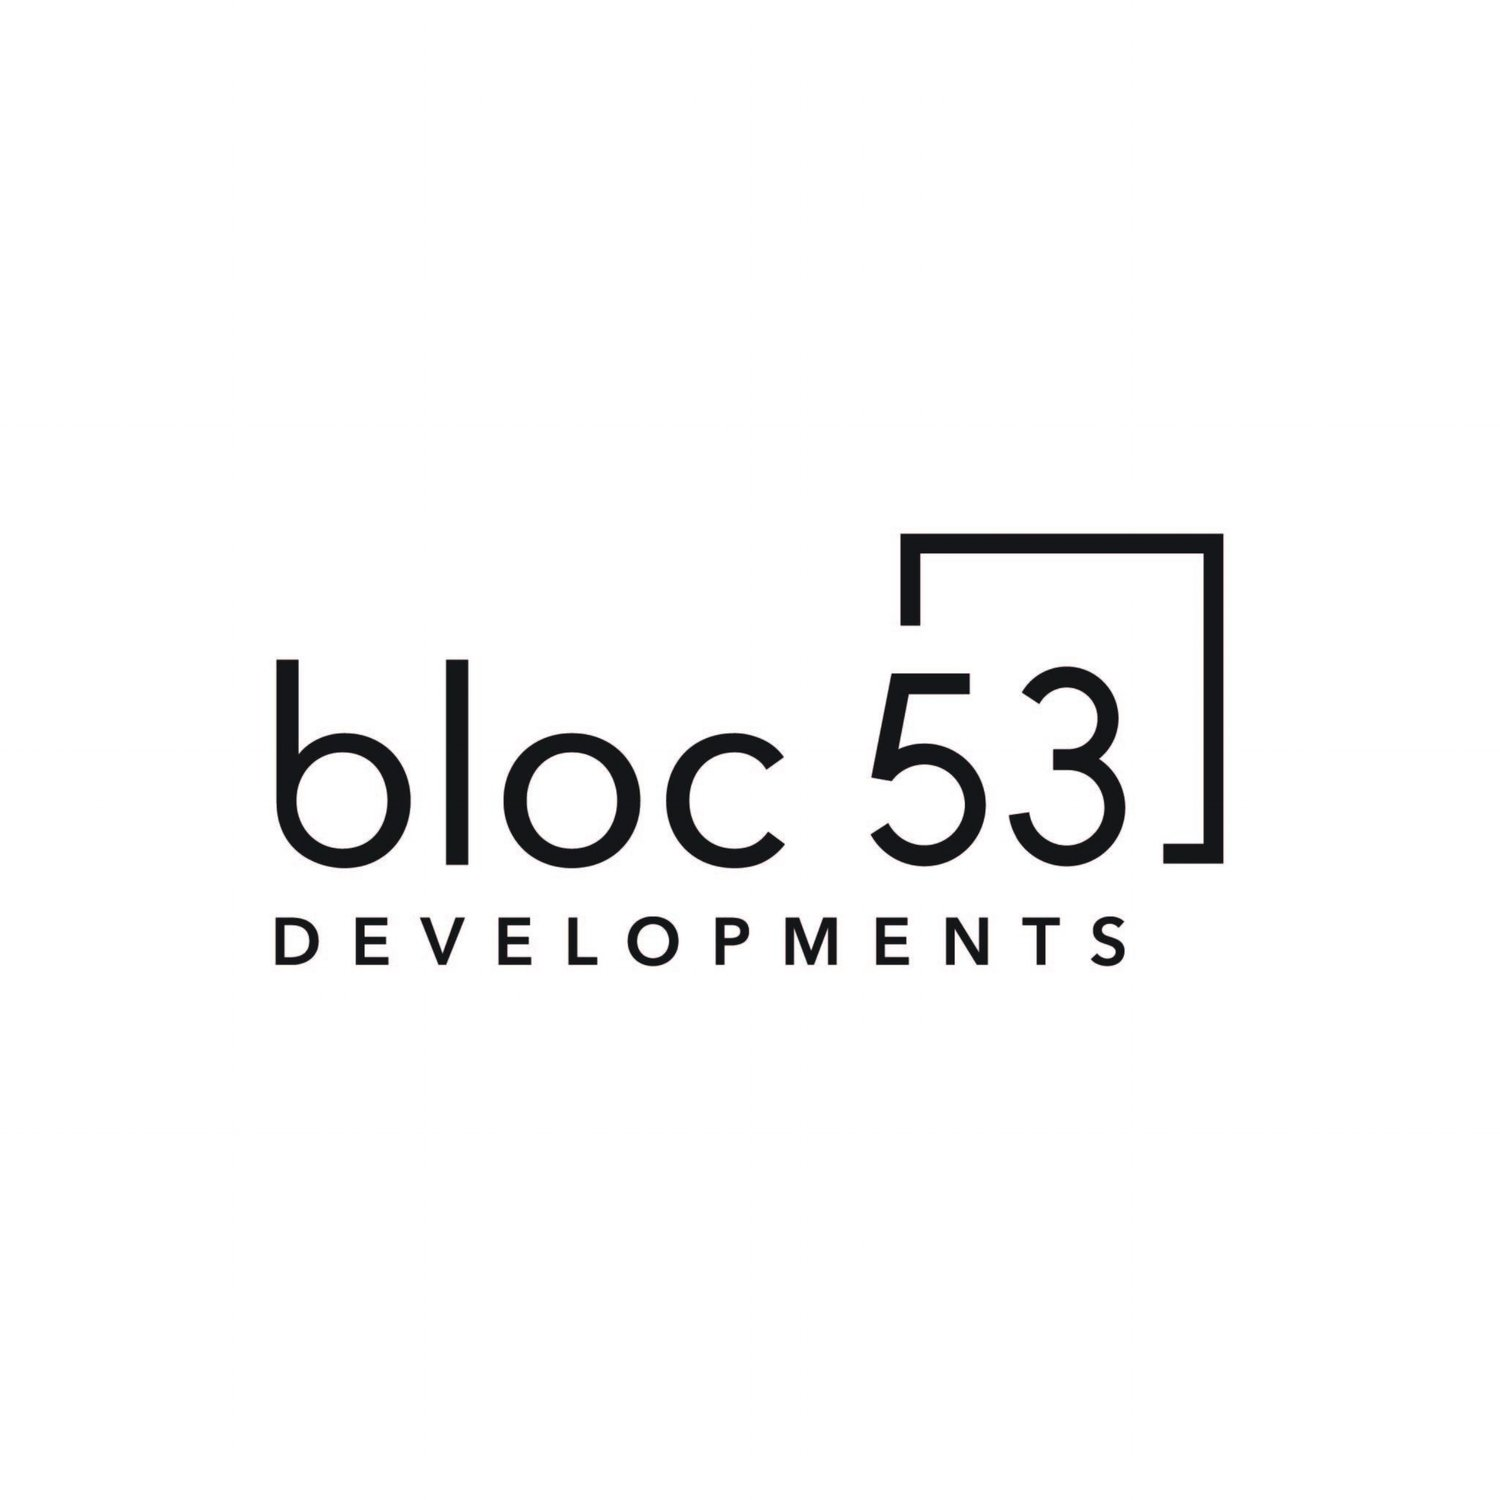 BLOC 53 DEVELOPMENTS